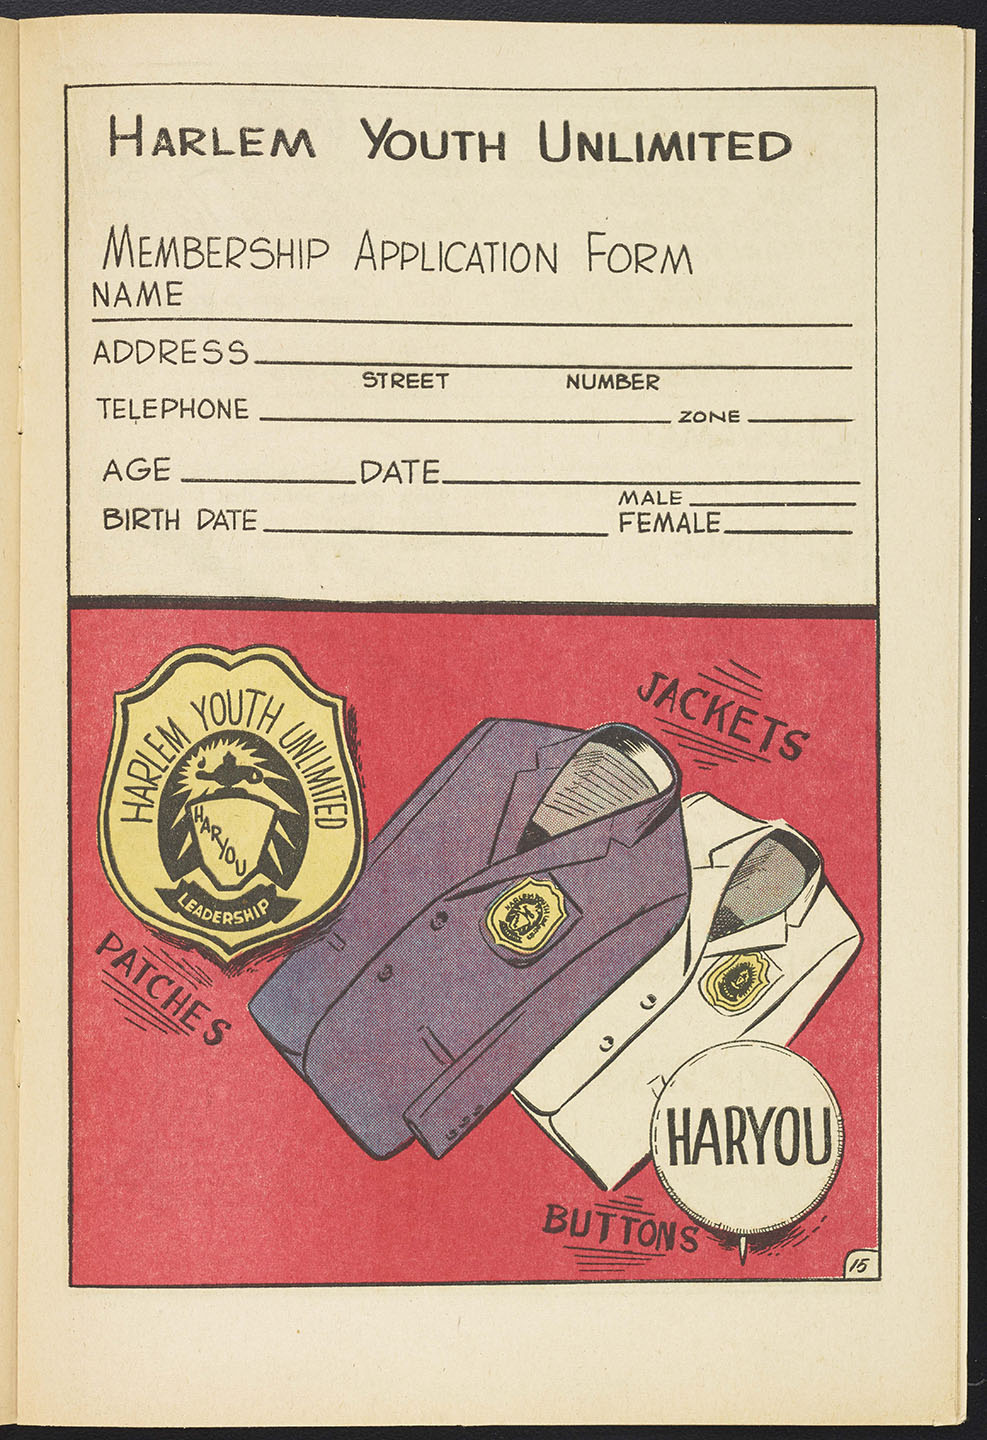 Membership application from  Harlem Youth Report . NYPD Intelligence Division Records, NYC Municipal Archives.